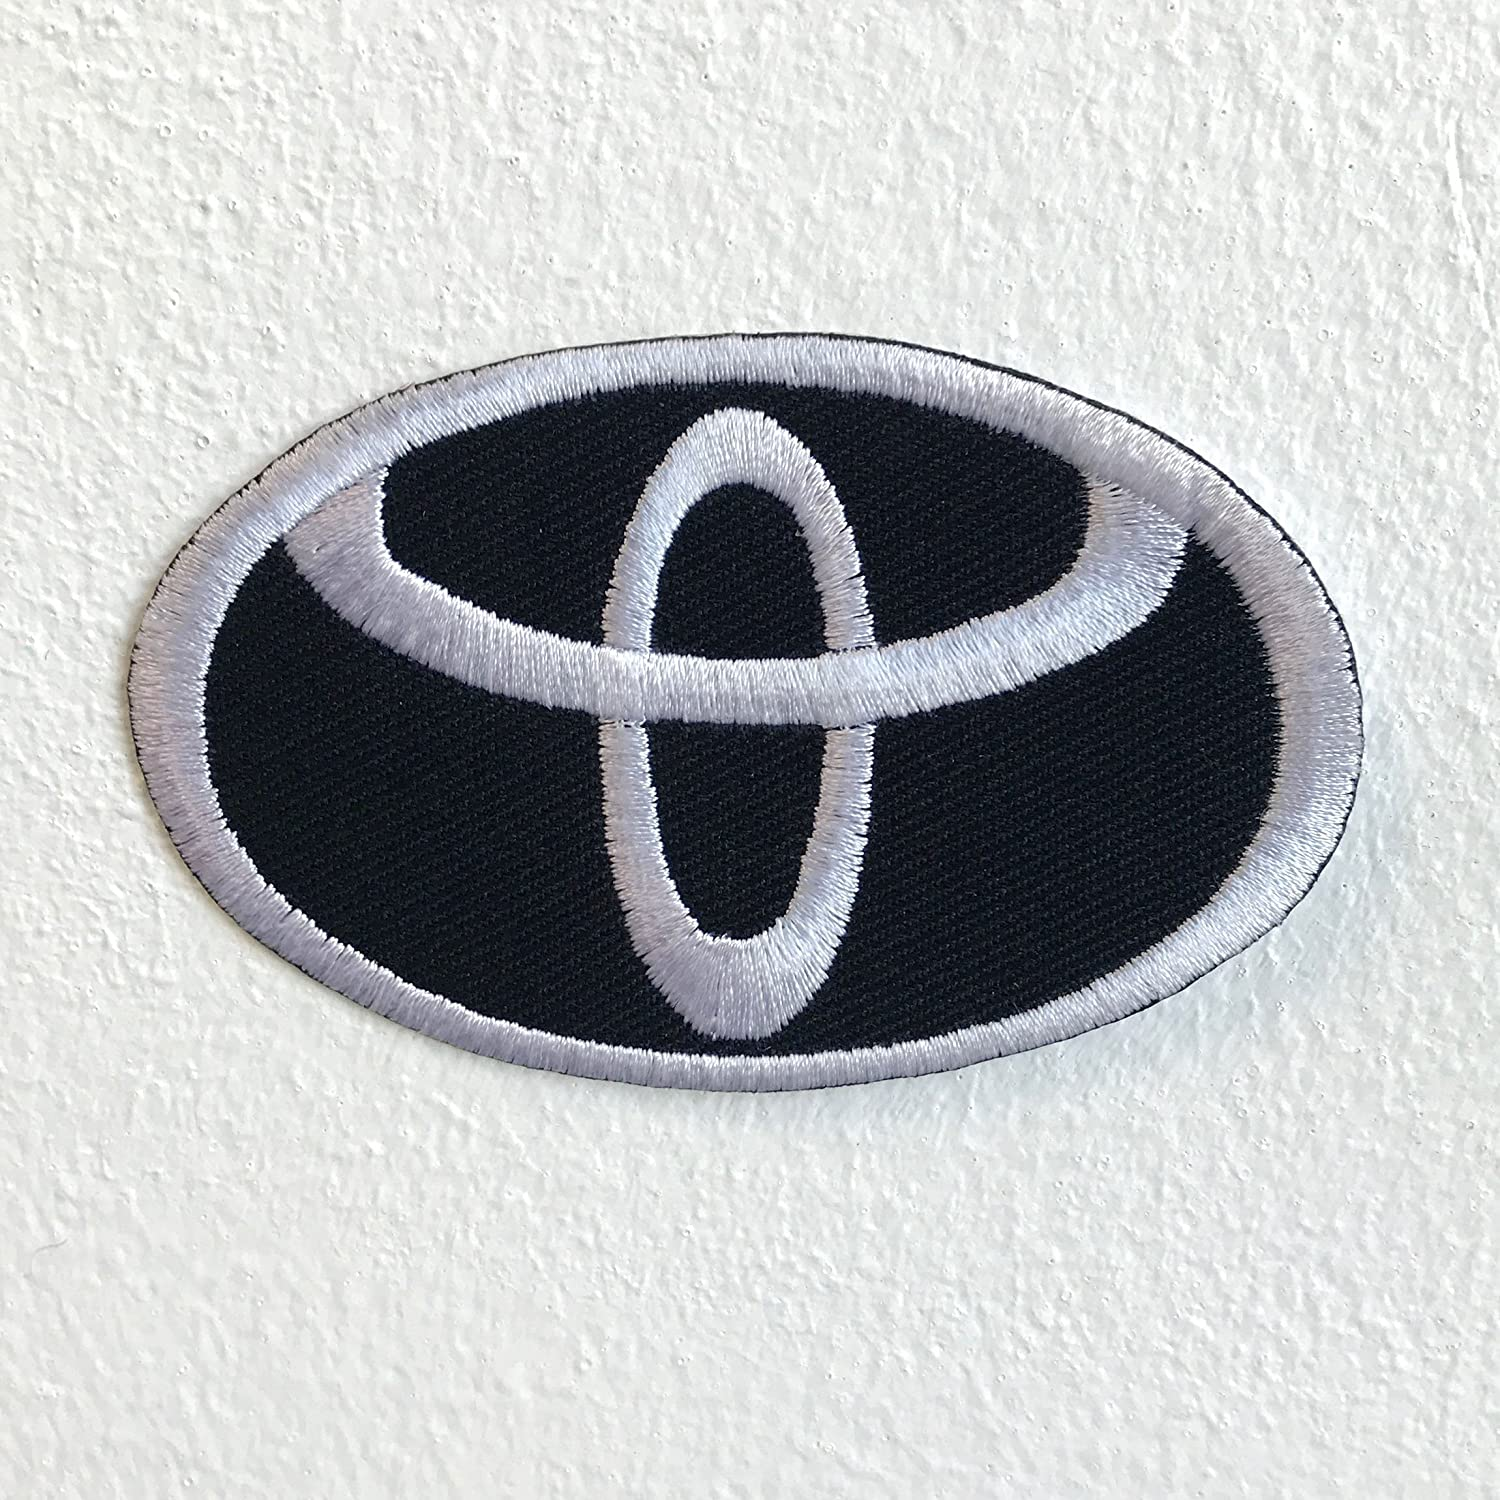 Toyota motorsports logo Black Iron Sew on Embroidered Patch GK - Patches